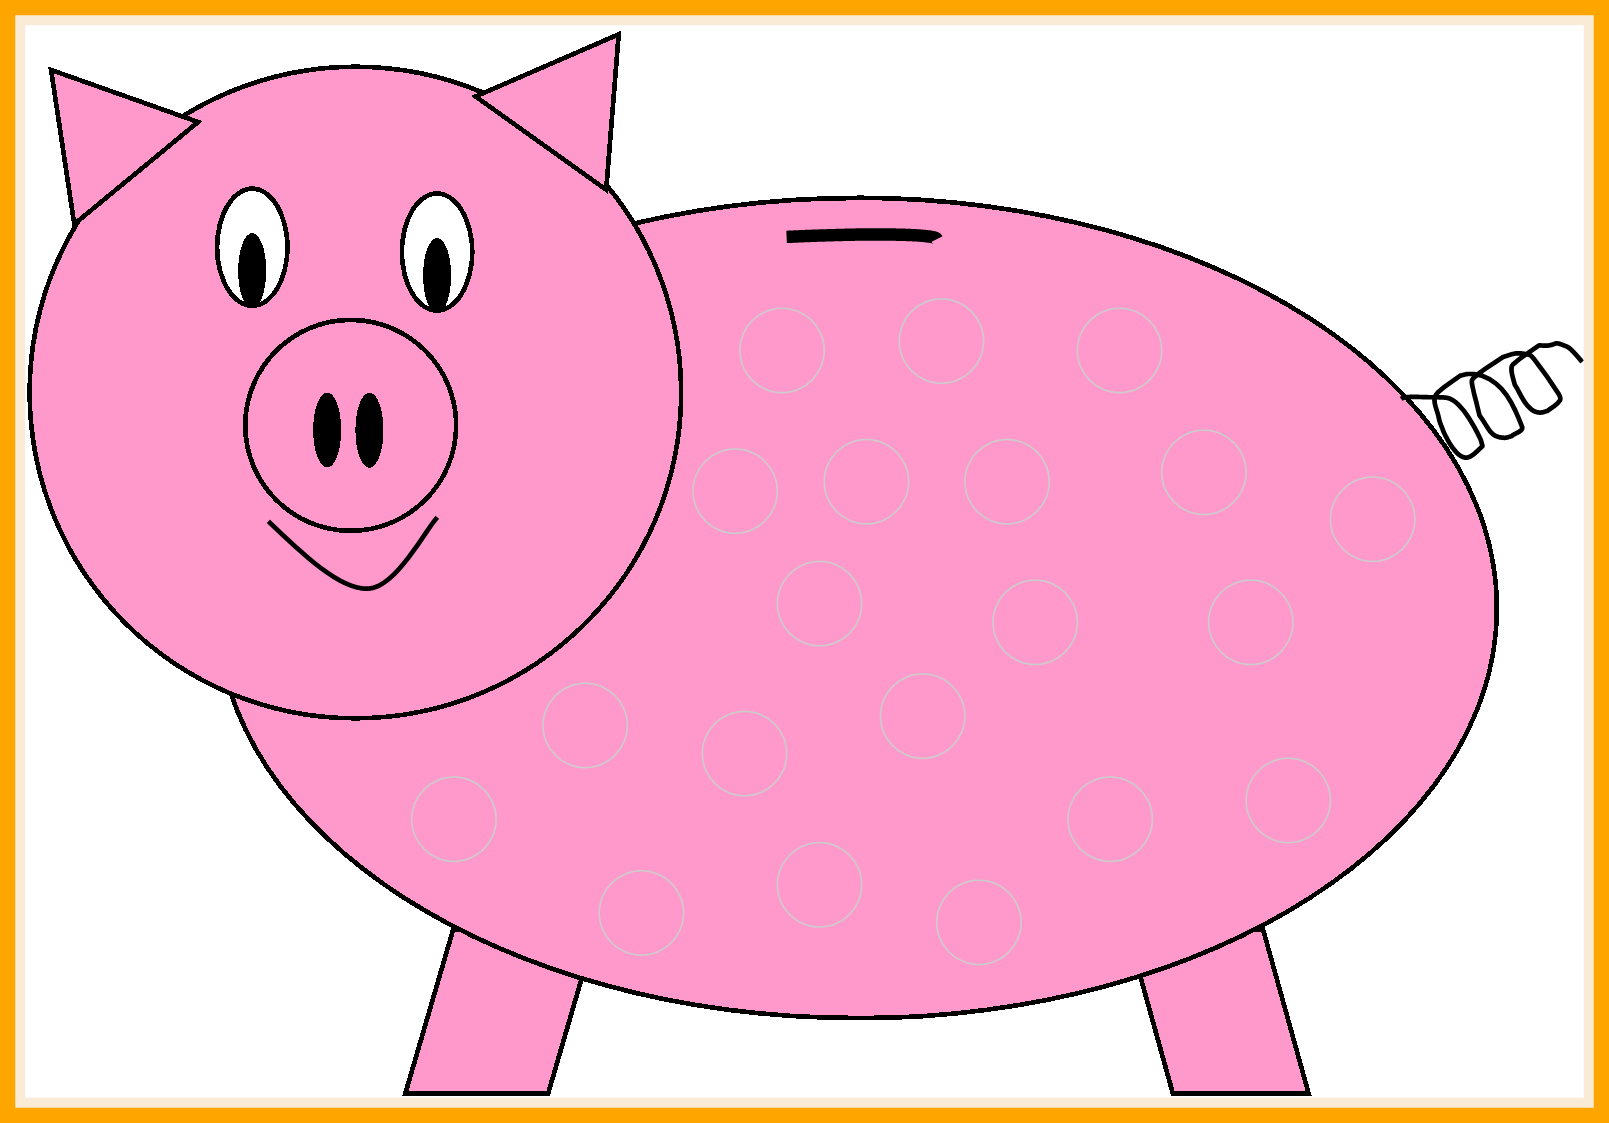 Piggy bank clipart images royalty free stock Pig clipart bank FREE for download on rpelm royalty free stock